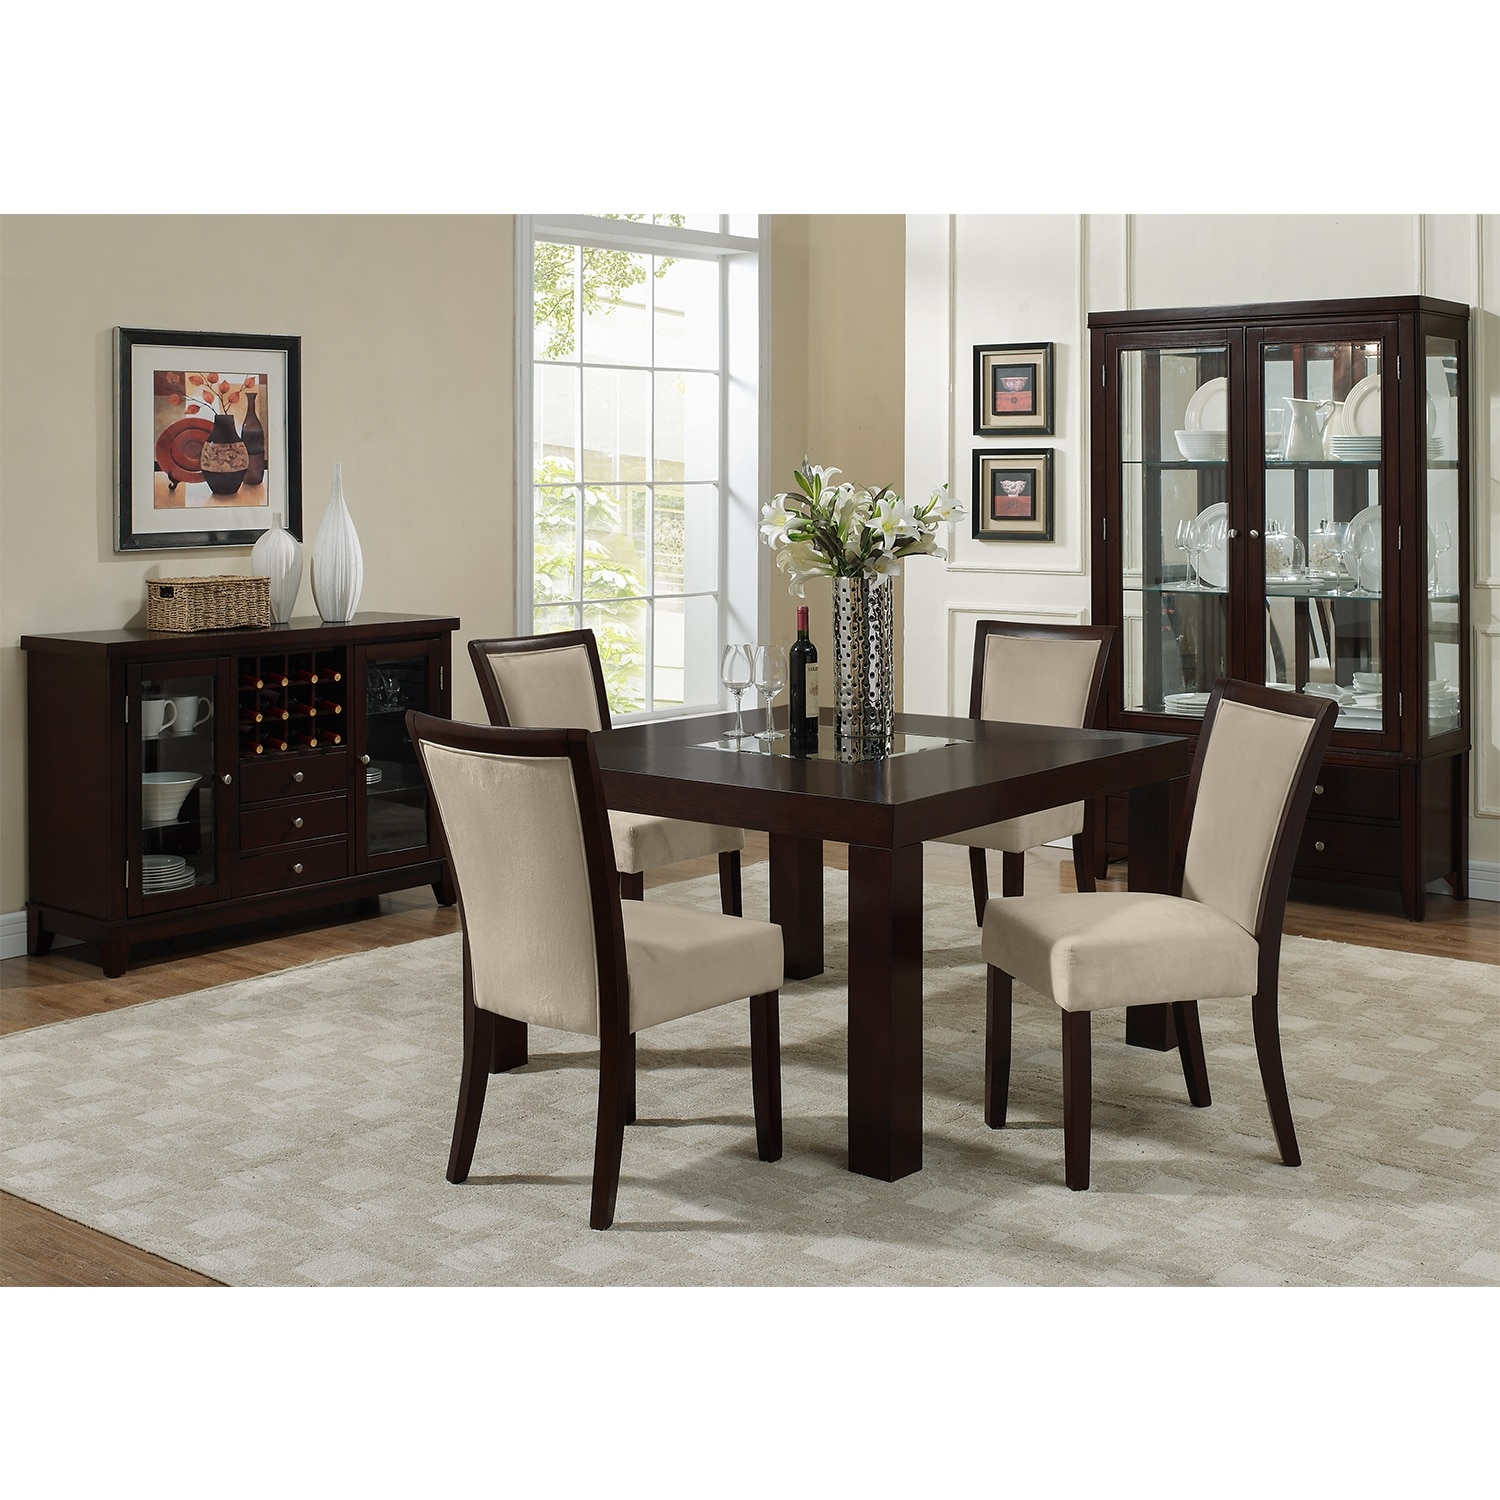 Tango dining room 50 dining table value city furniture for Dining room chairs 50